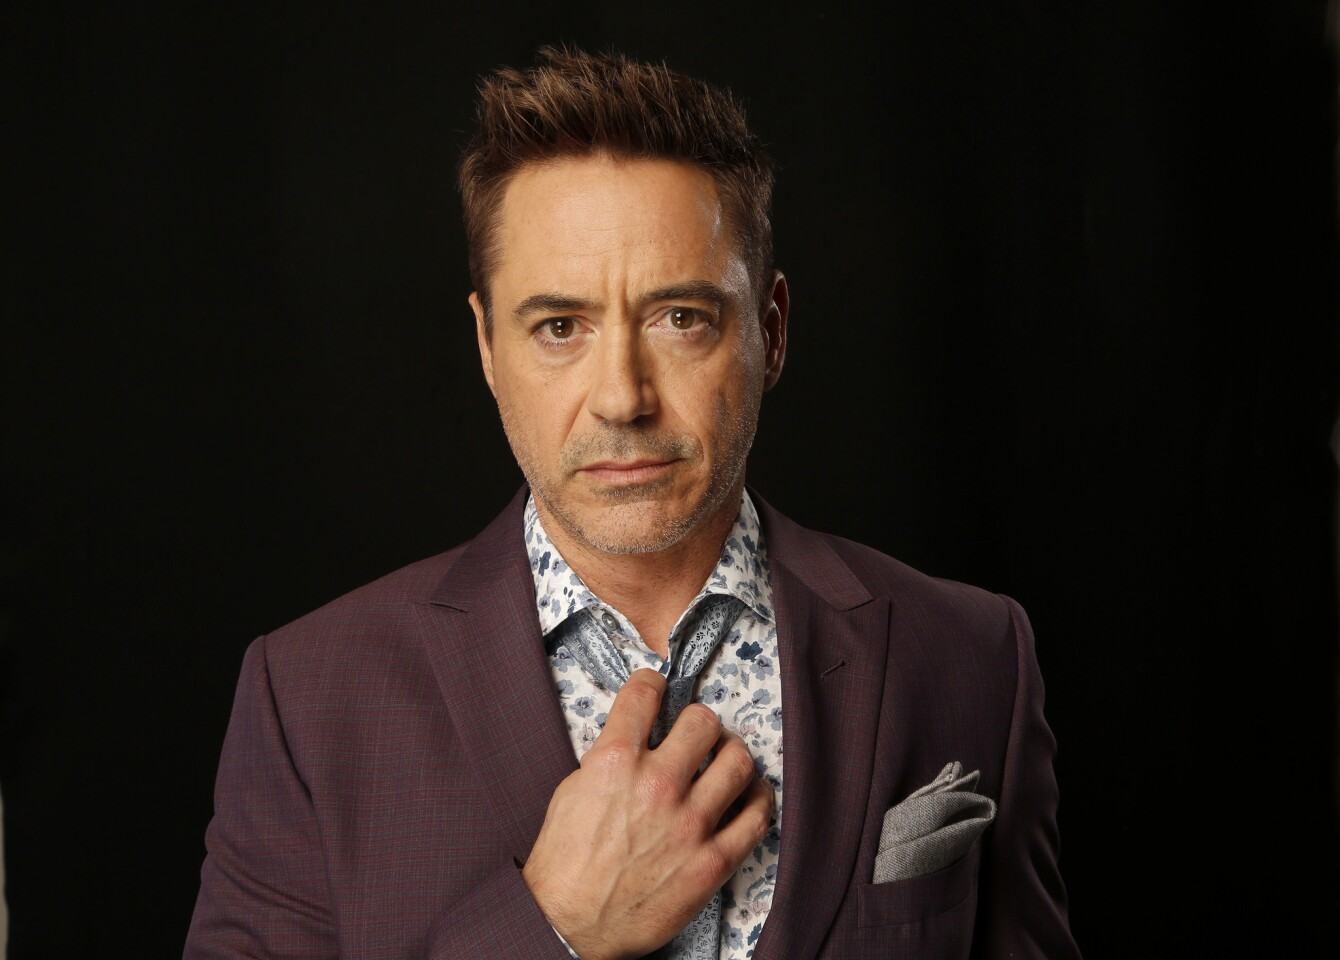 """Born in Manhattan on April 4, 1965, Downey is the son of underground filmmaker Robert Downey Sr. He made his film debut in his father's 1970 film, """"Pound,"""" when he was 5 years old."""